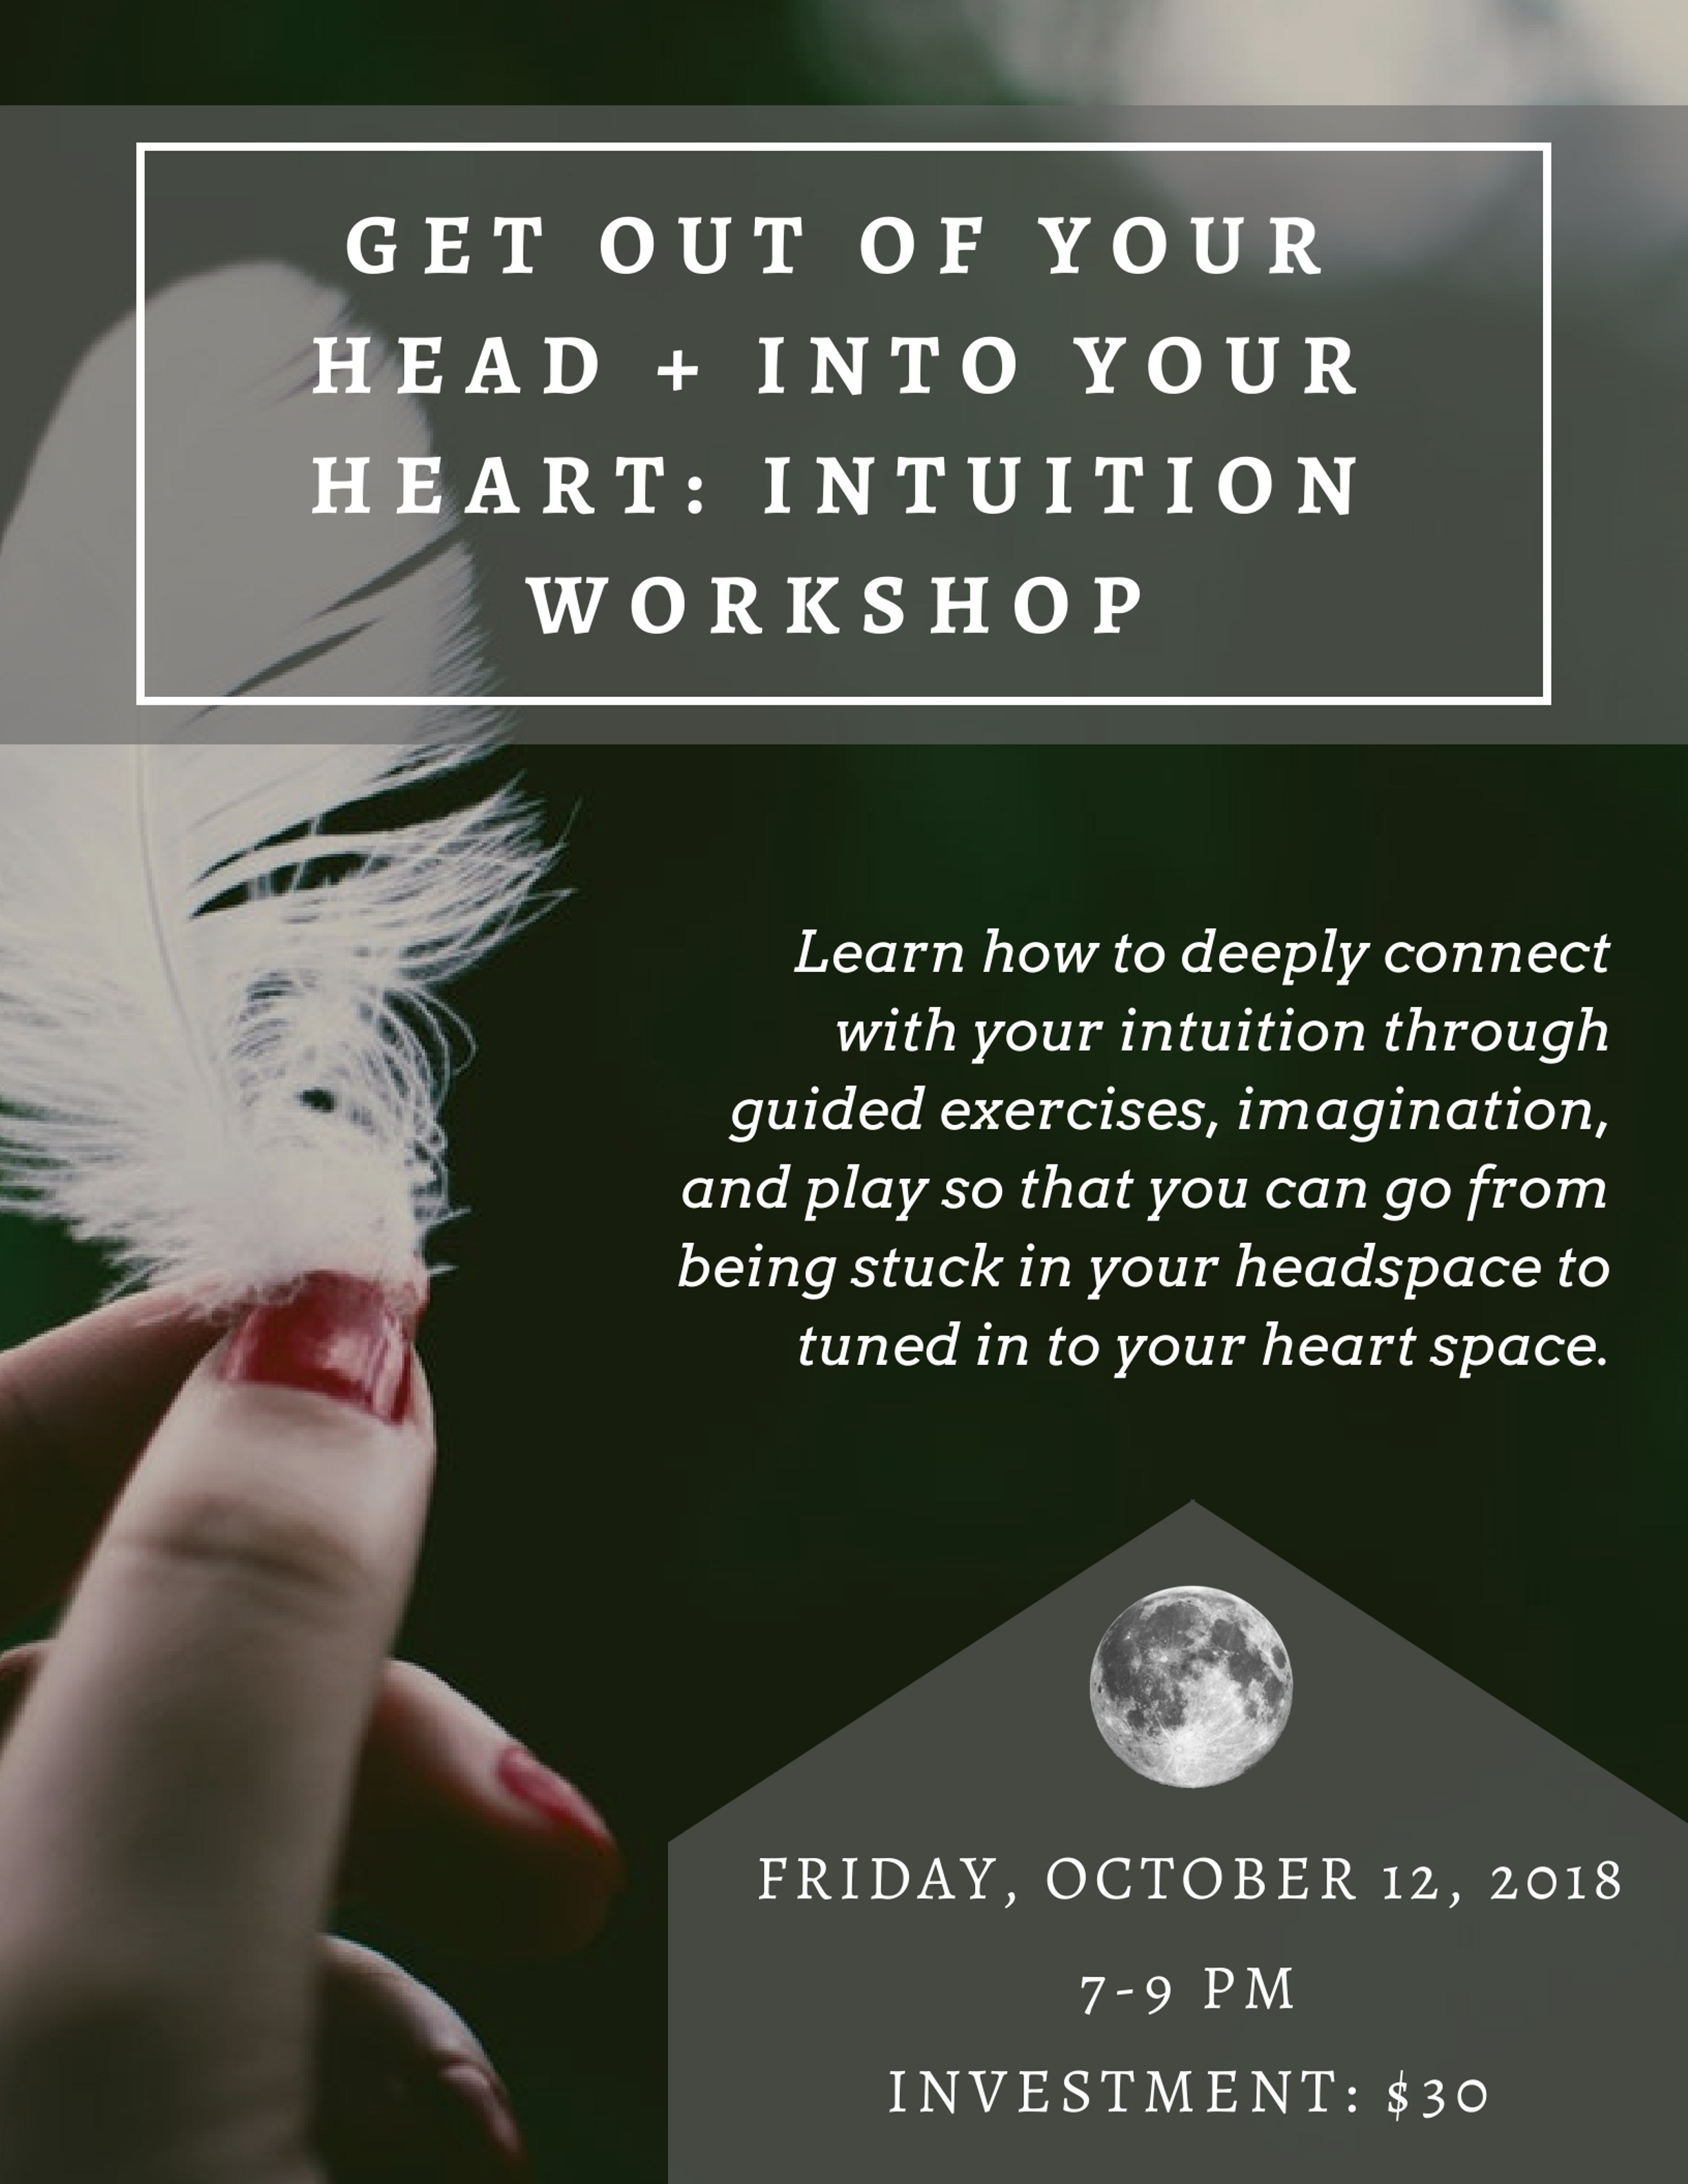 get-out-of-your-head-intuition-workshop